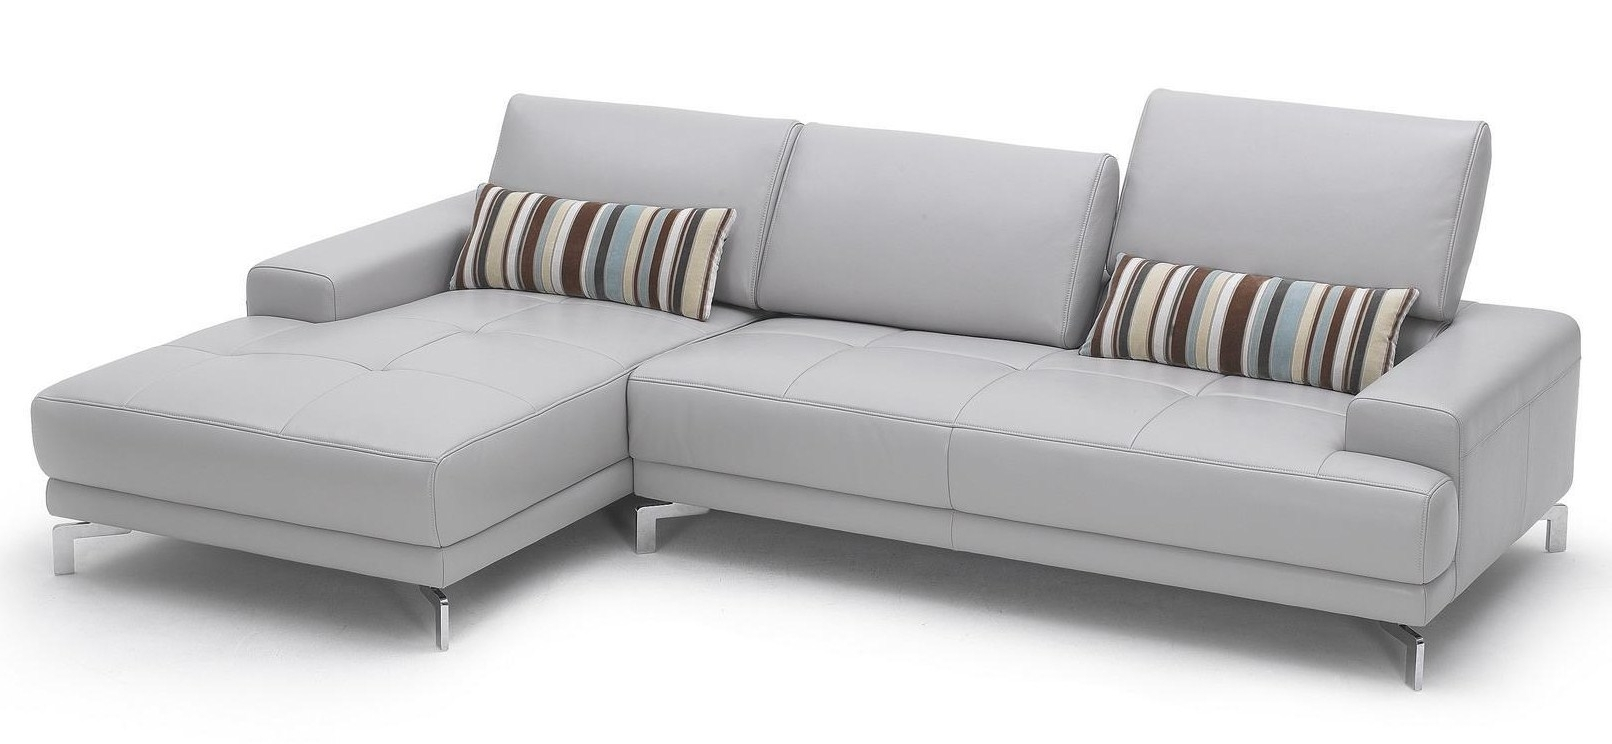 Most Up To Date White Modern Sofas With Sofas Modern And Modern Sofa White New York (View 8 of 20)